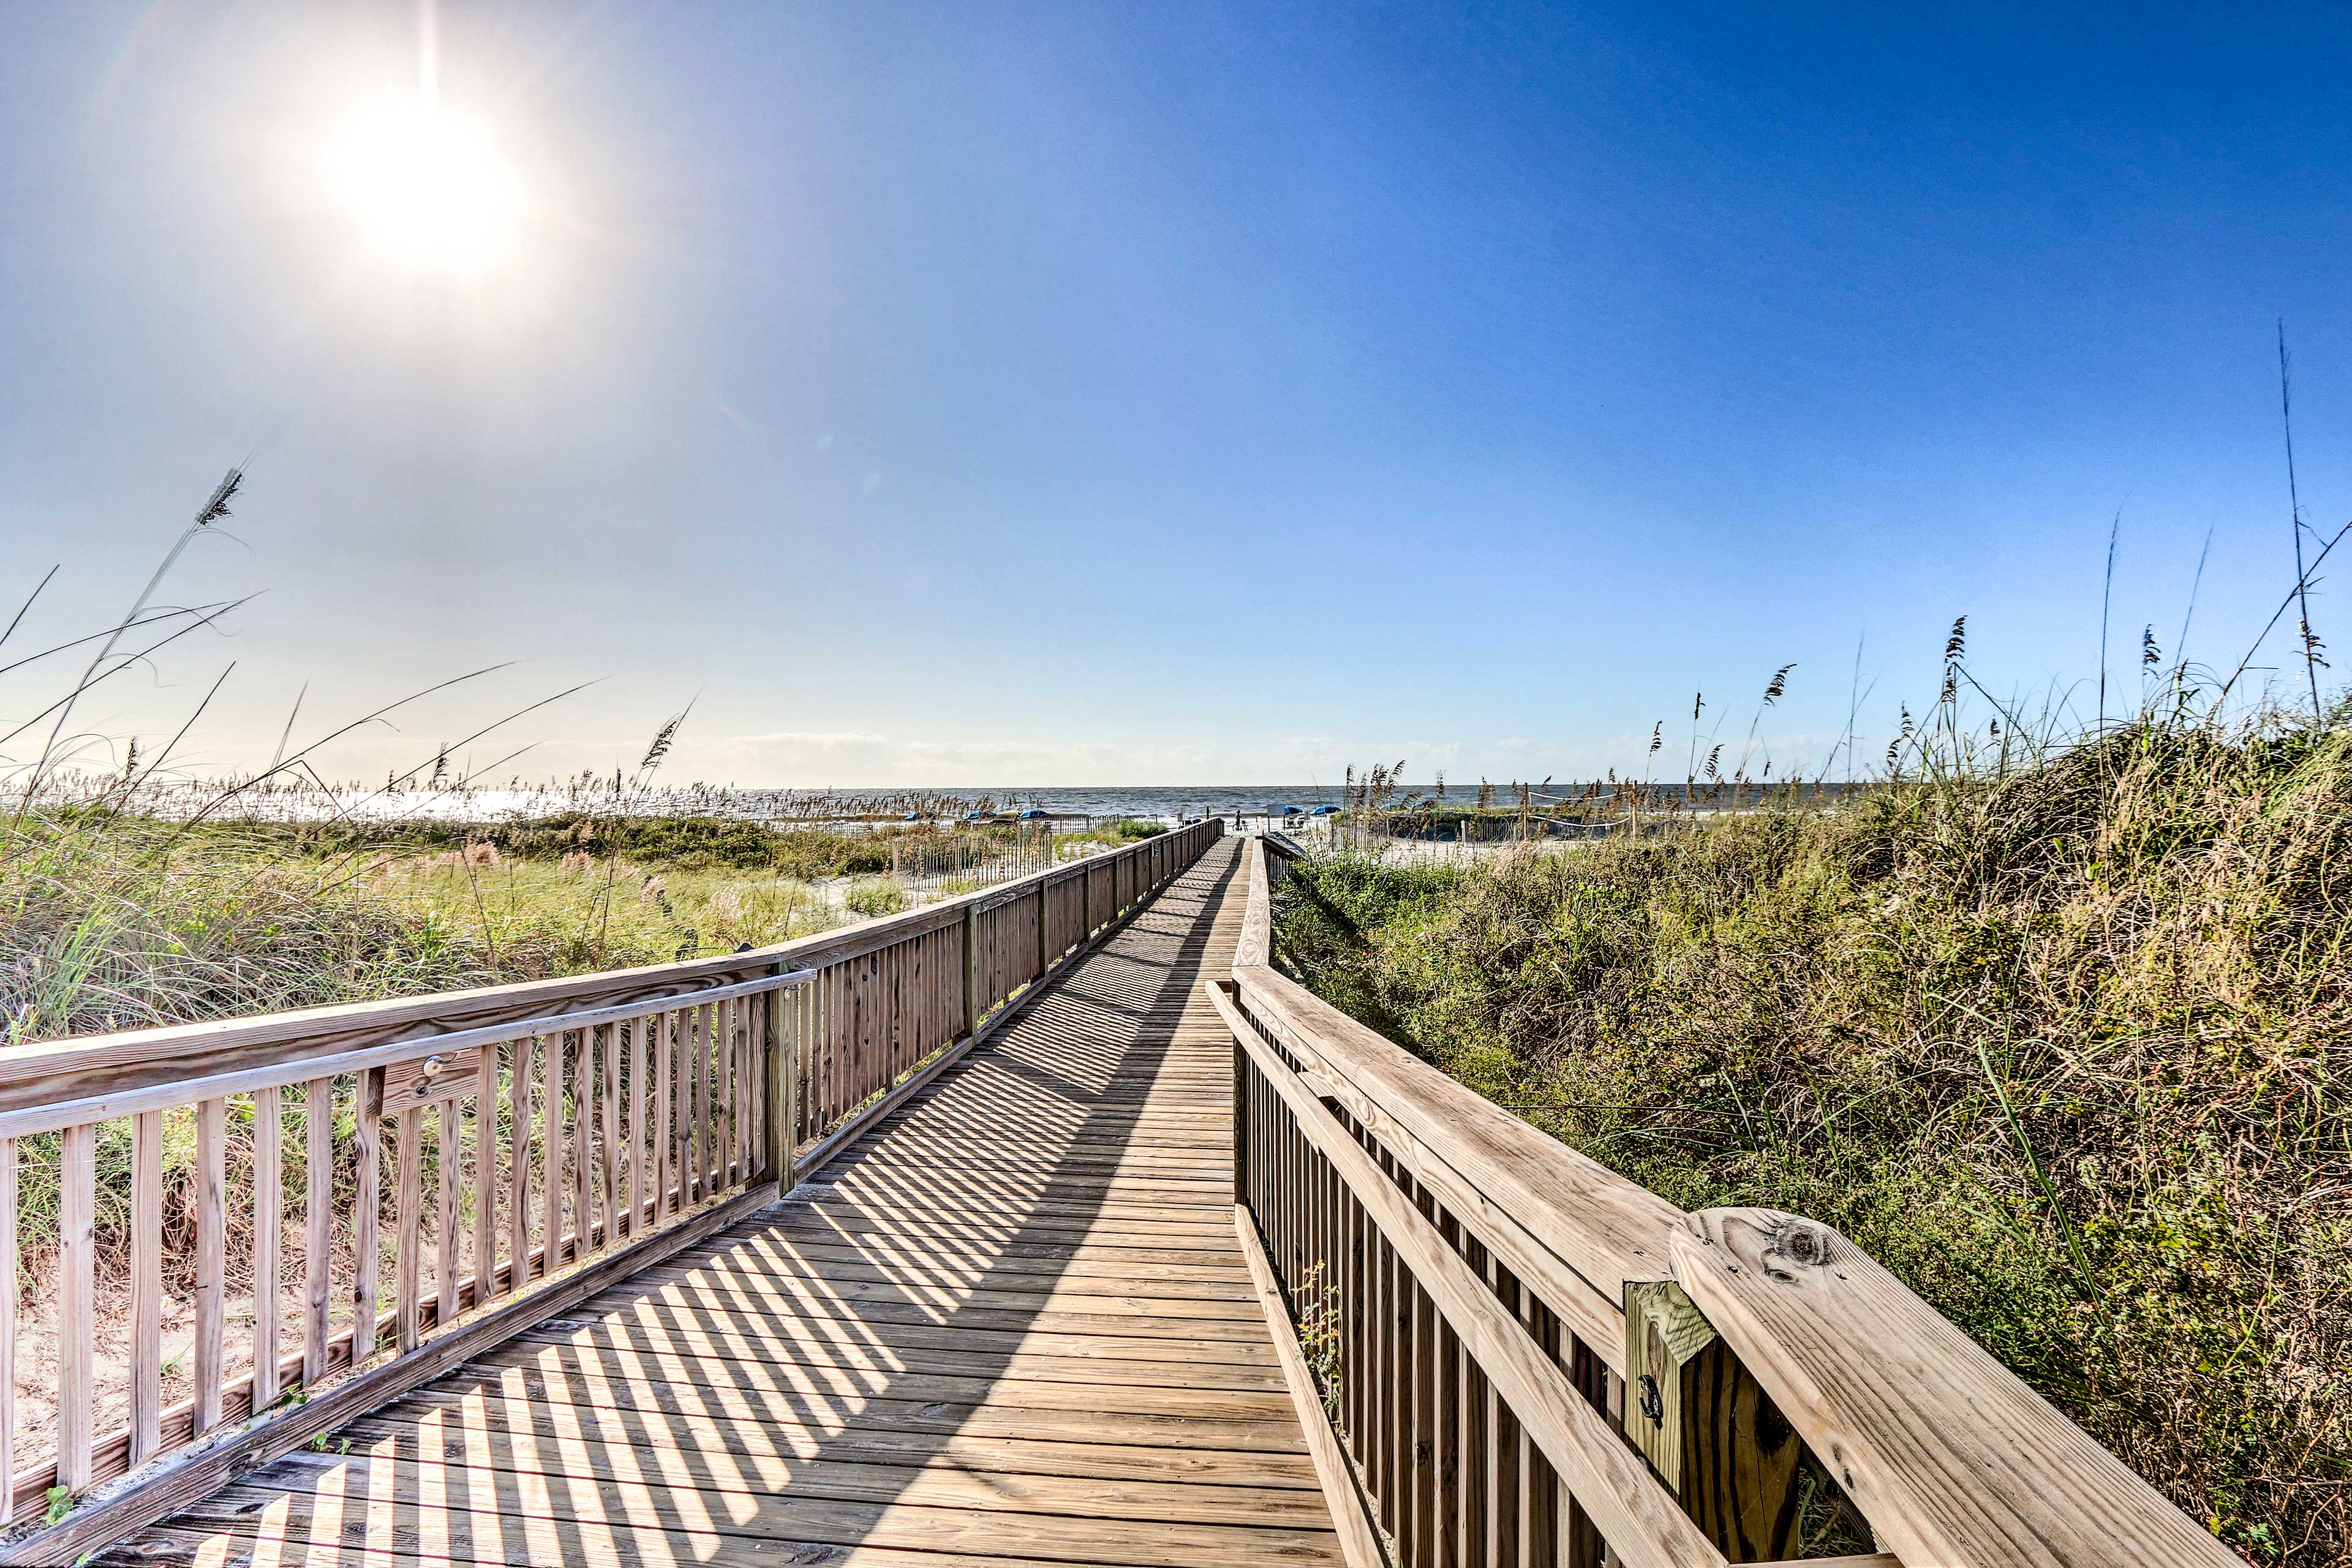 The boardwalk leads directly to the beach.